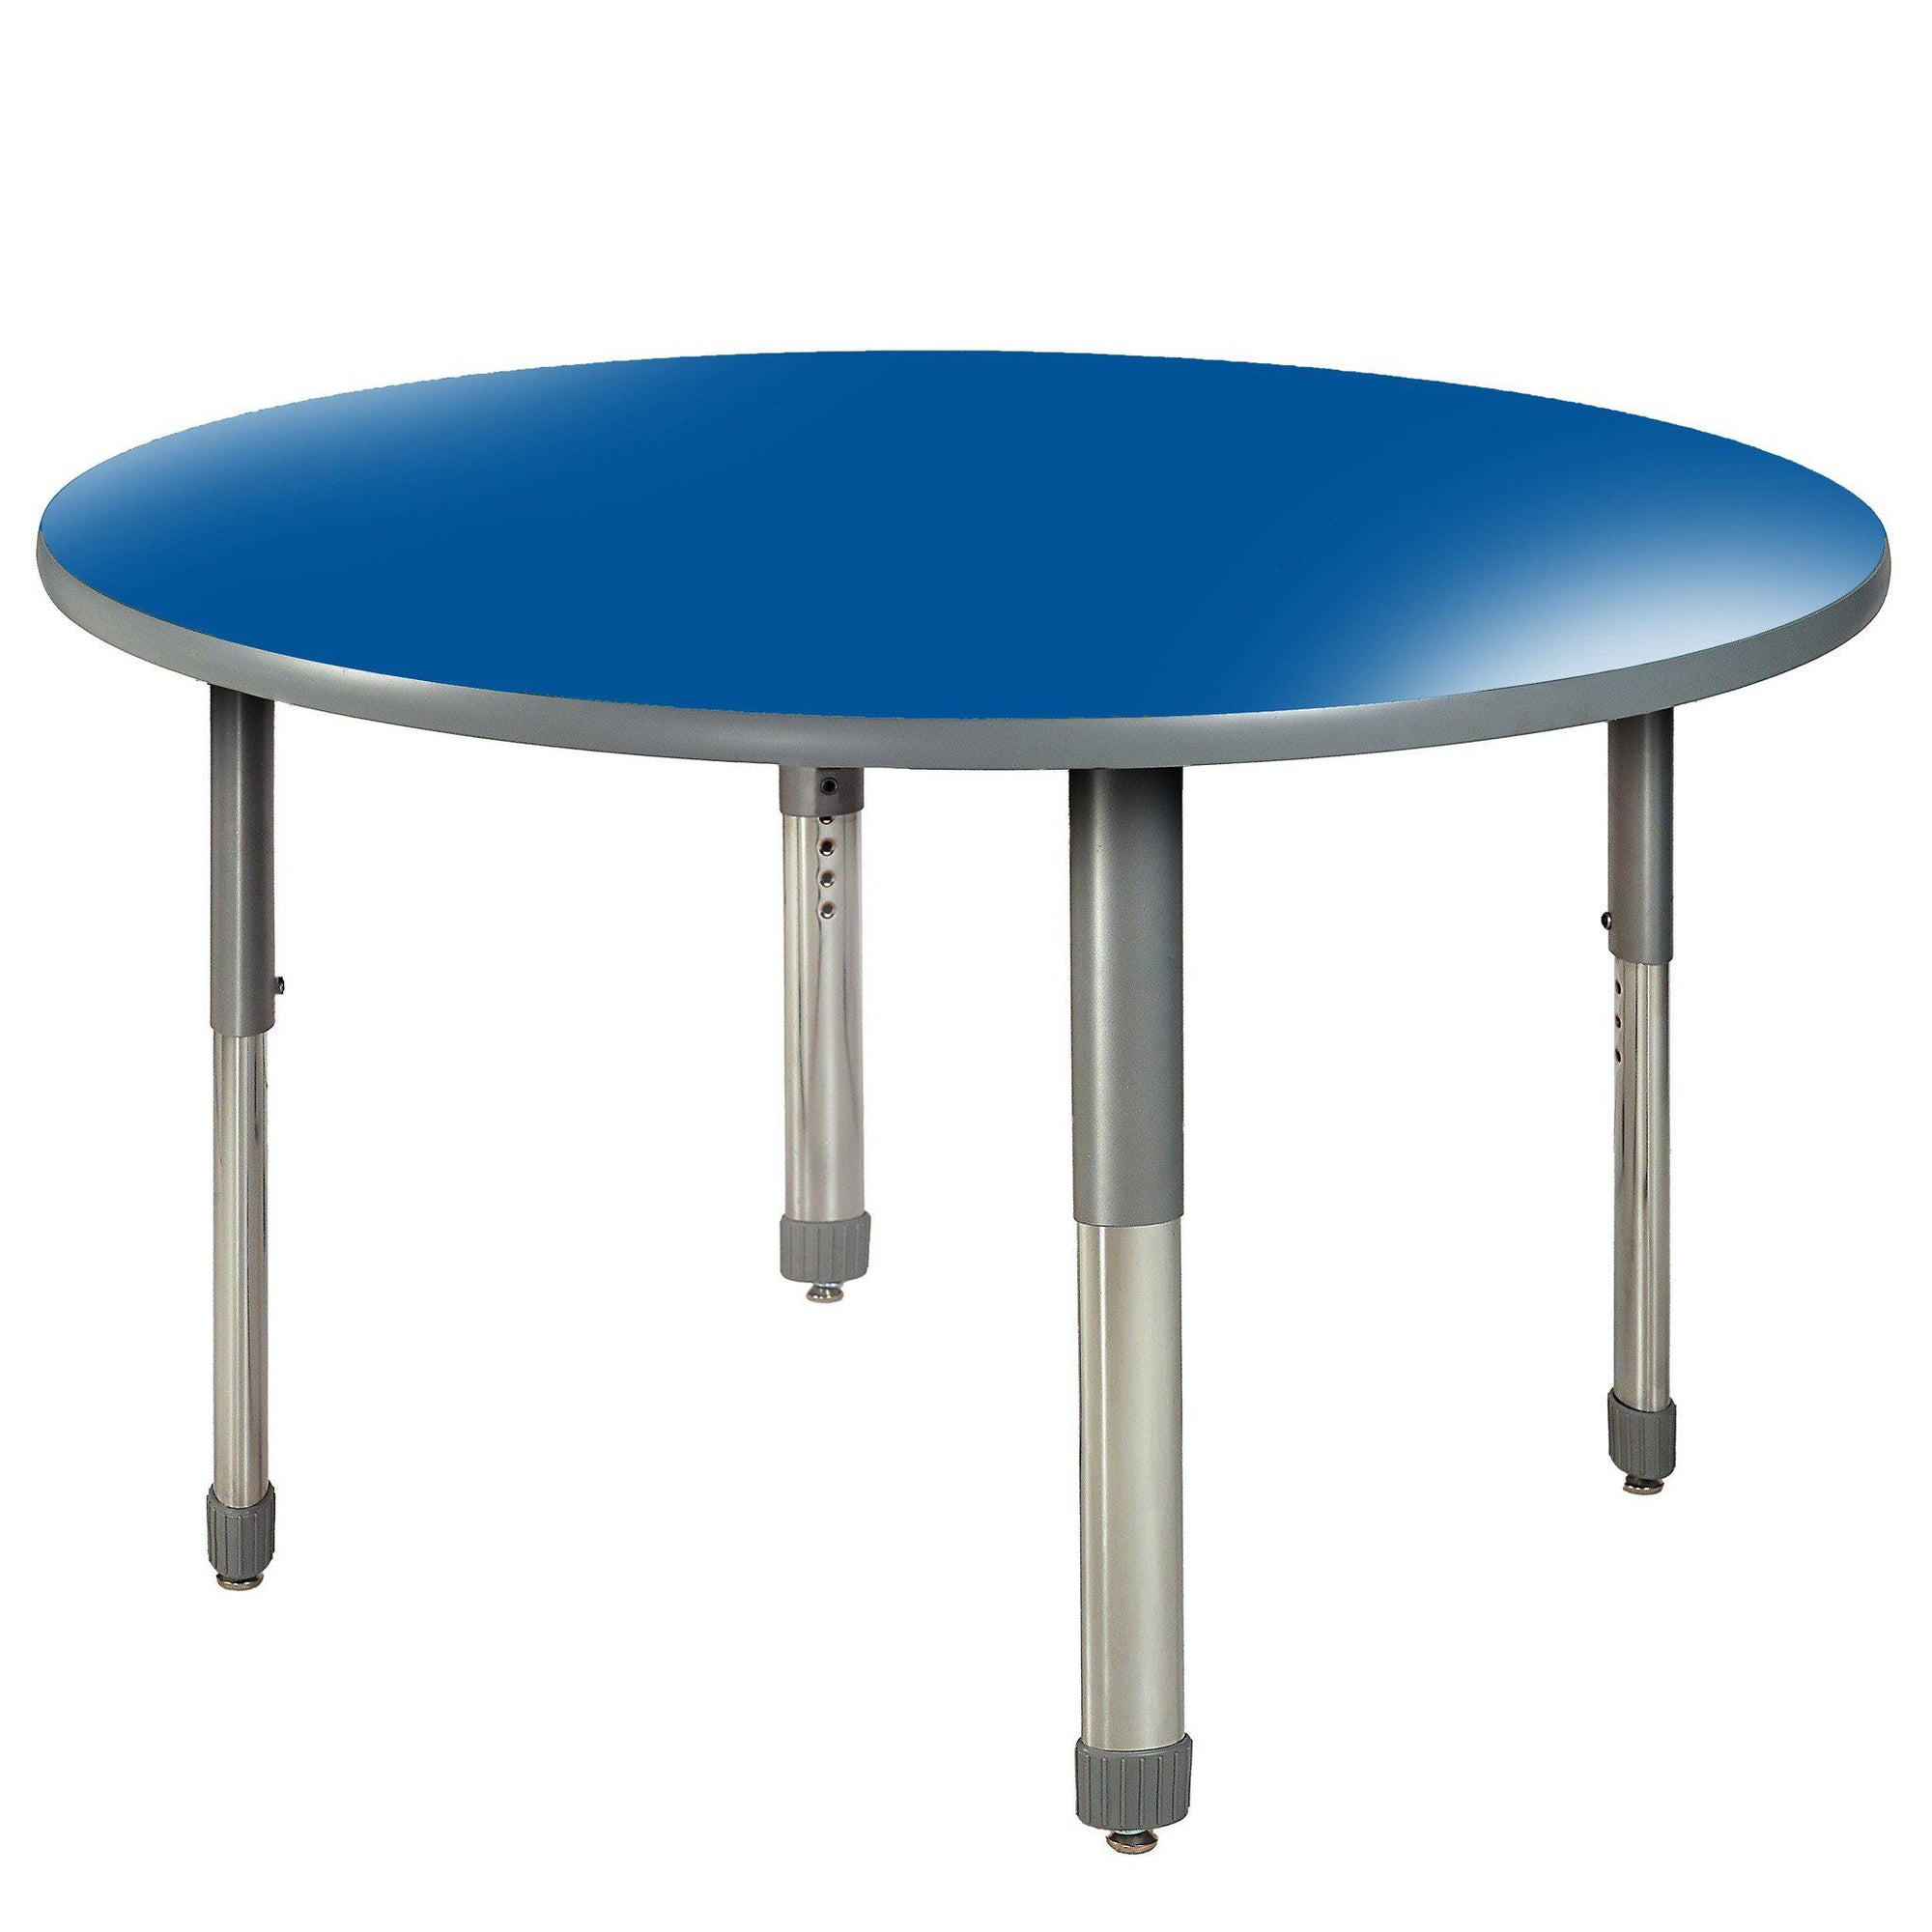 "Aero Activity Table, 48"" Circle, Oval Adjustable Height Legs"